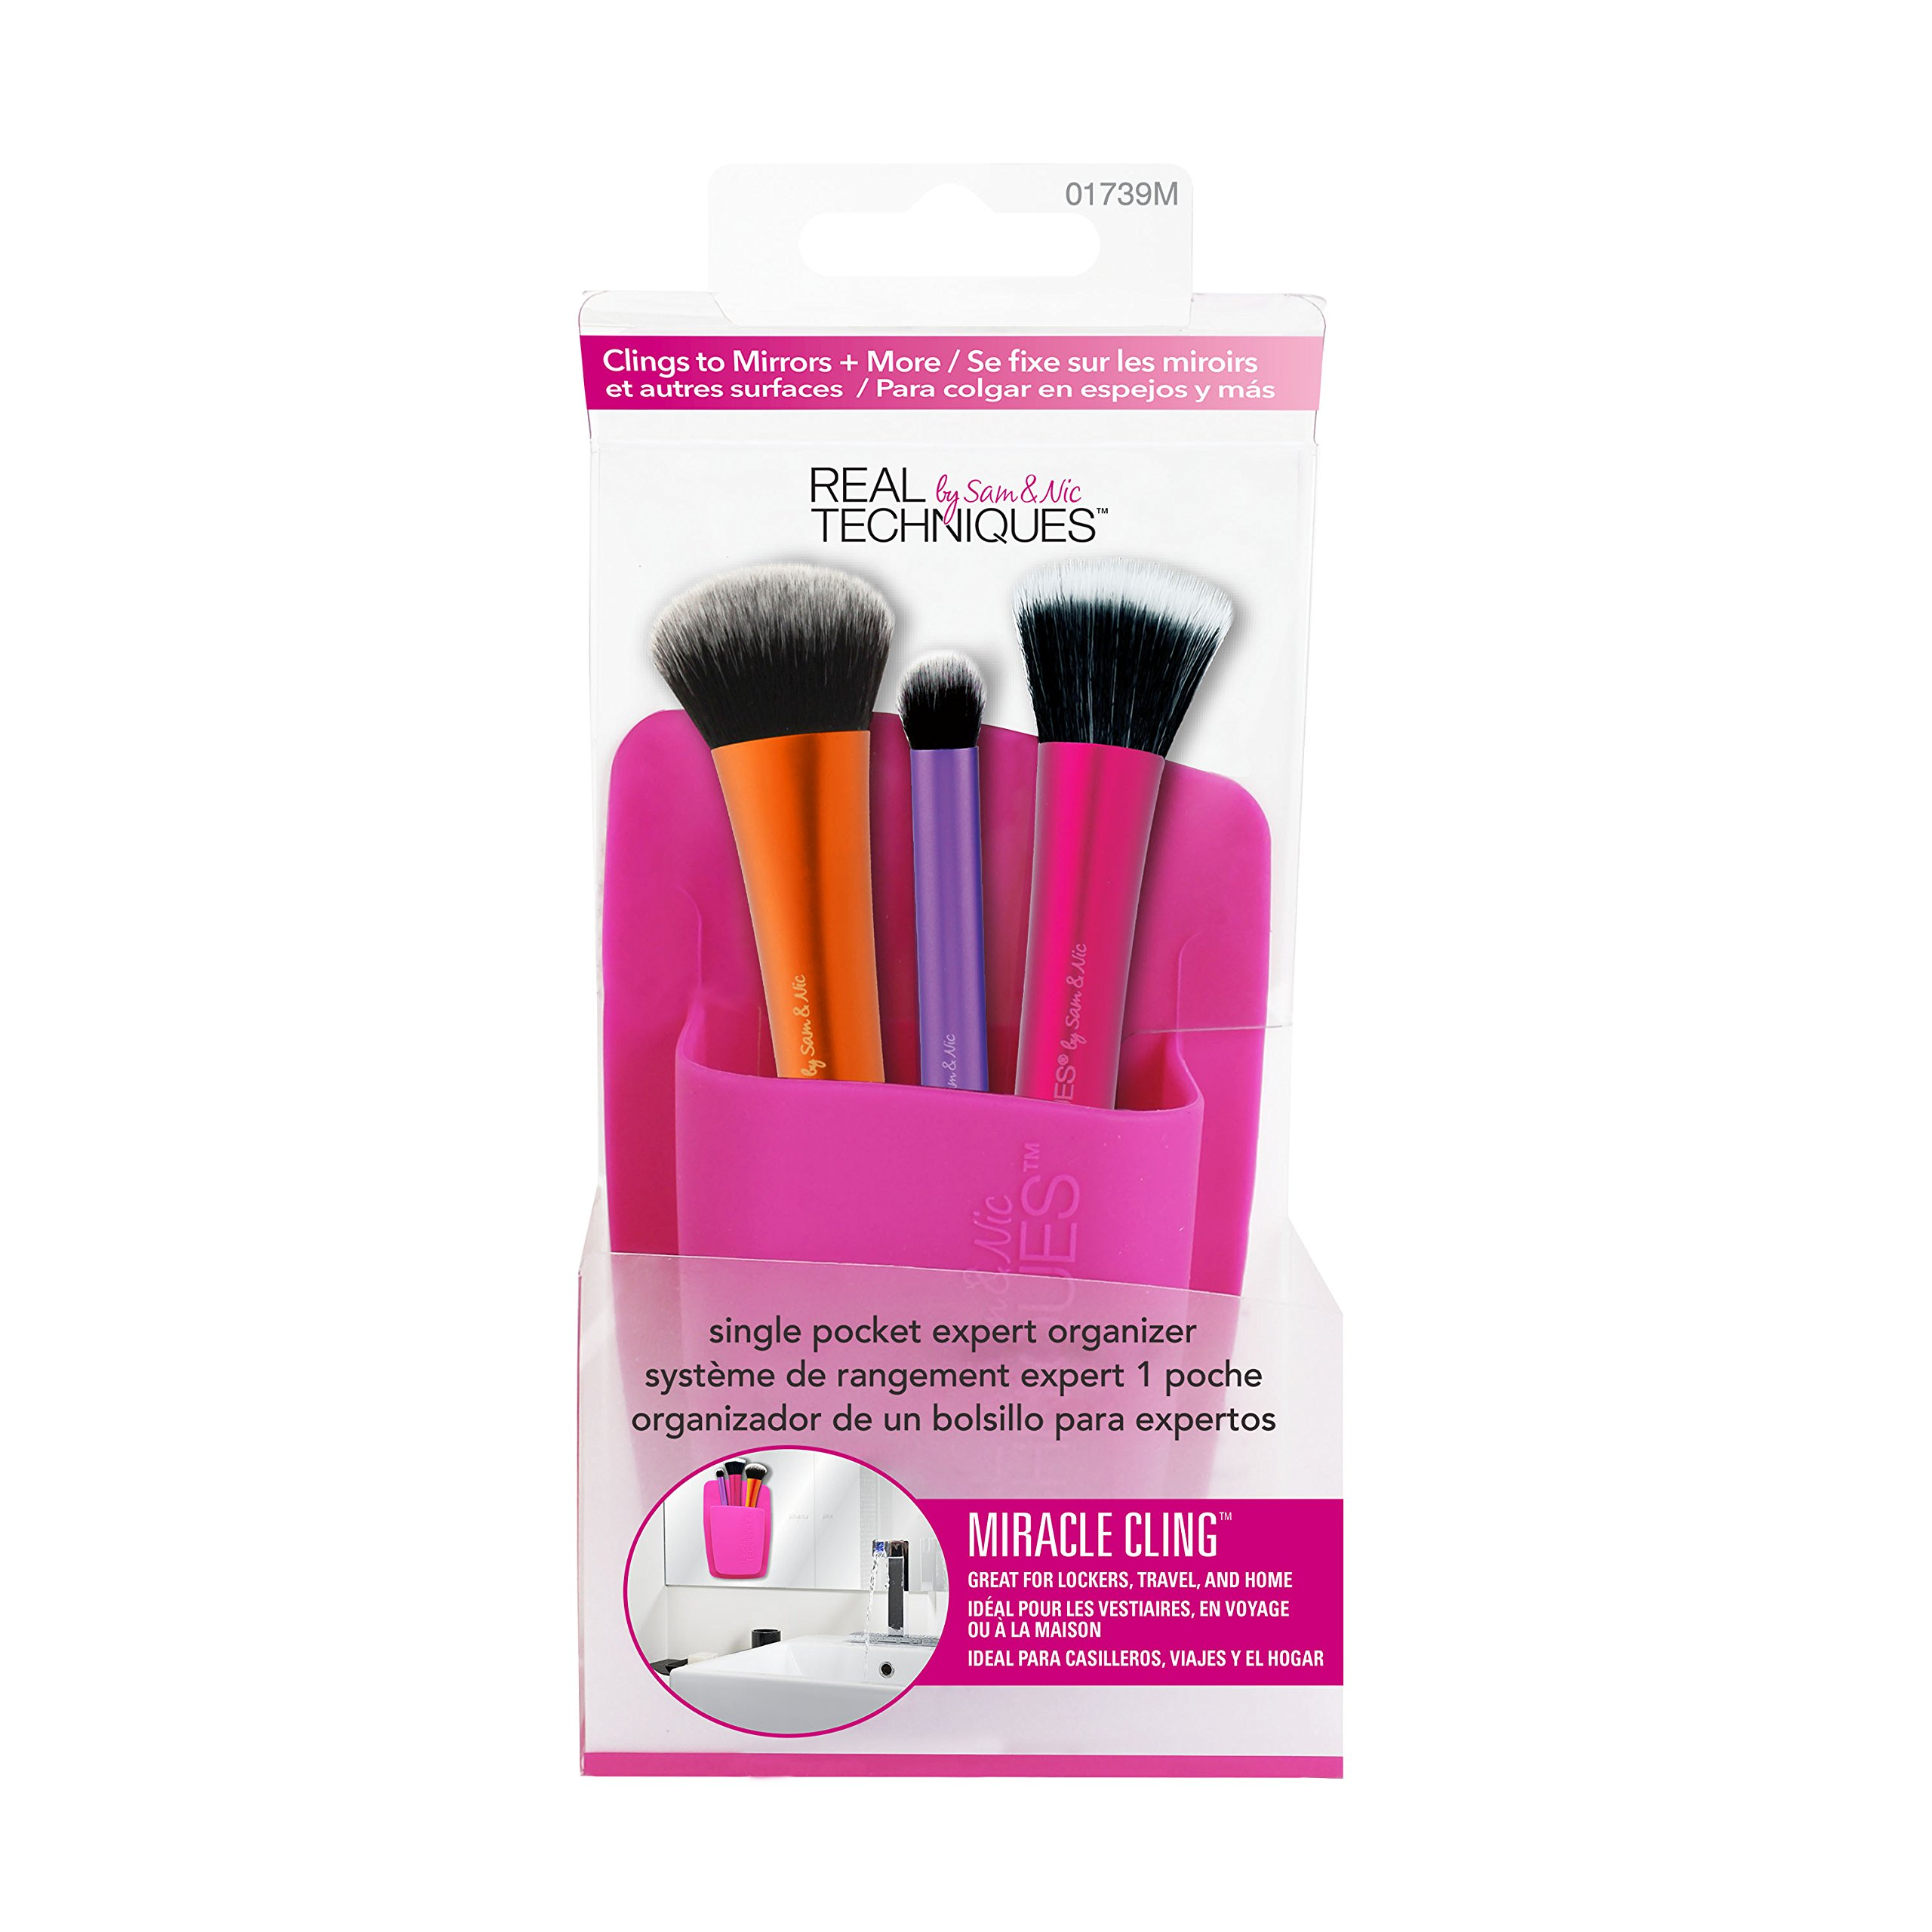 Real Techniques Single pocket expert organizer-pink – soporte para brochas rosa 150 g